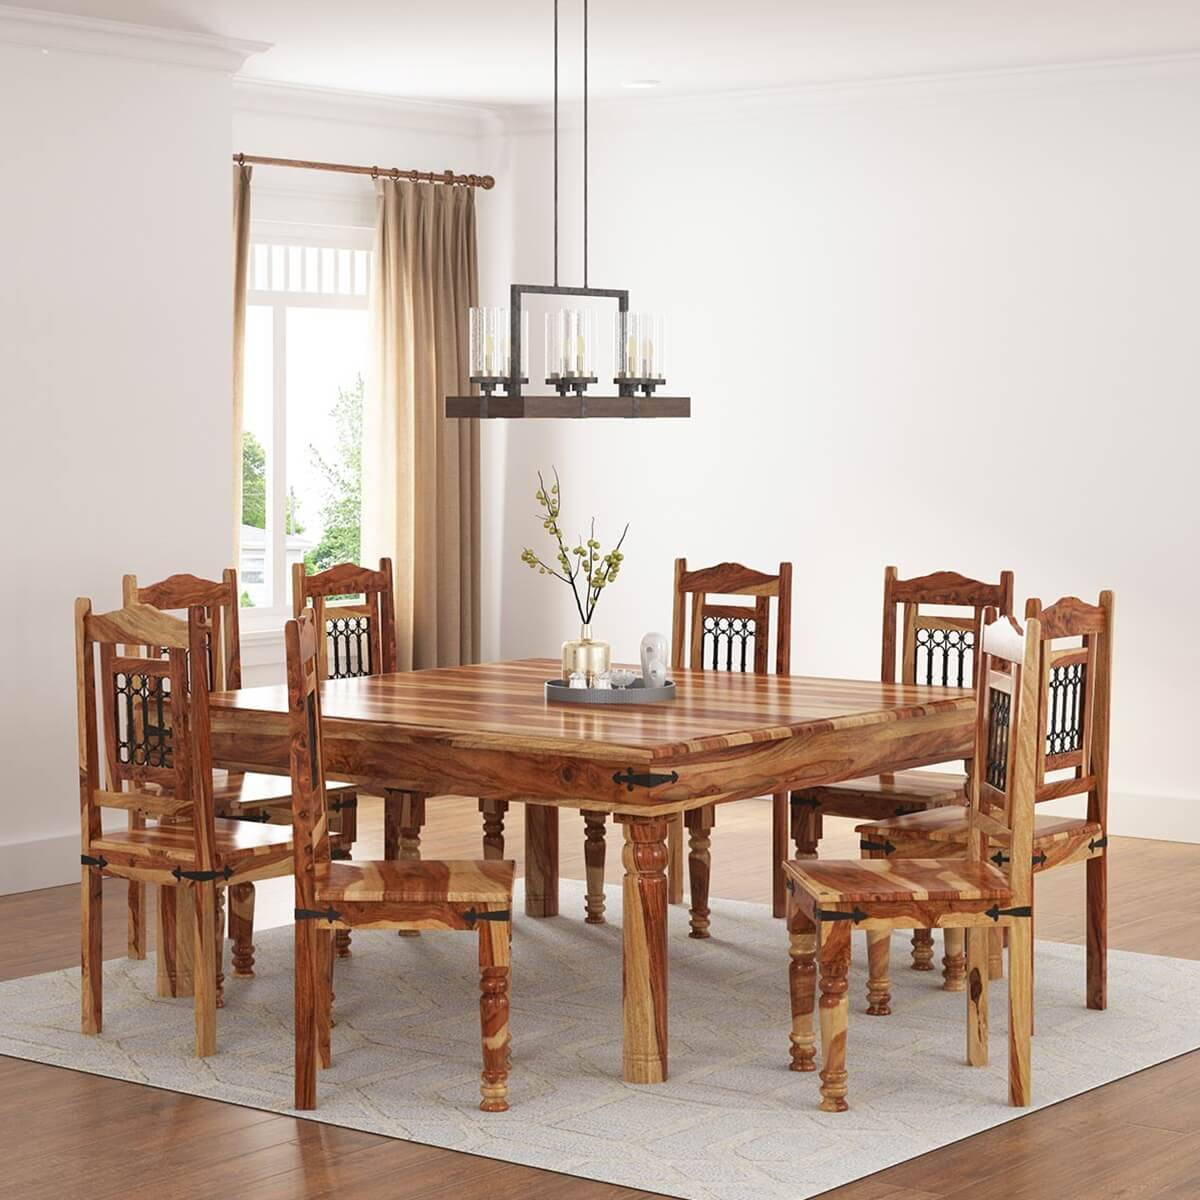 Peoria solid wood large square dining table chair set for Wood dining room furniture